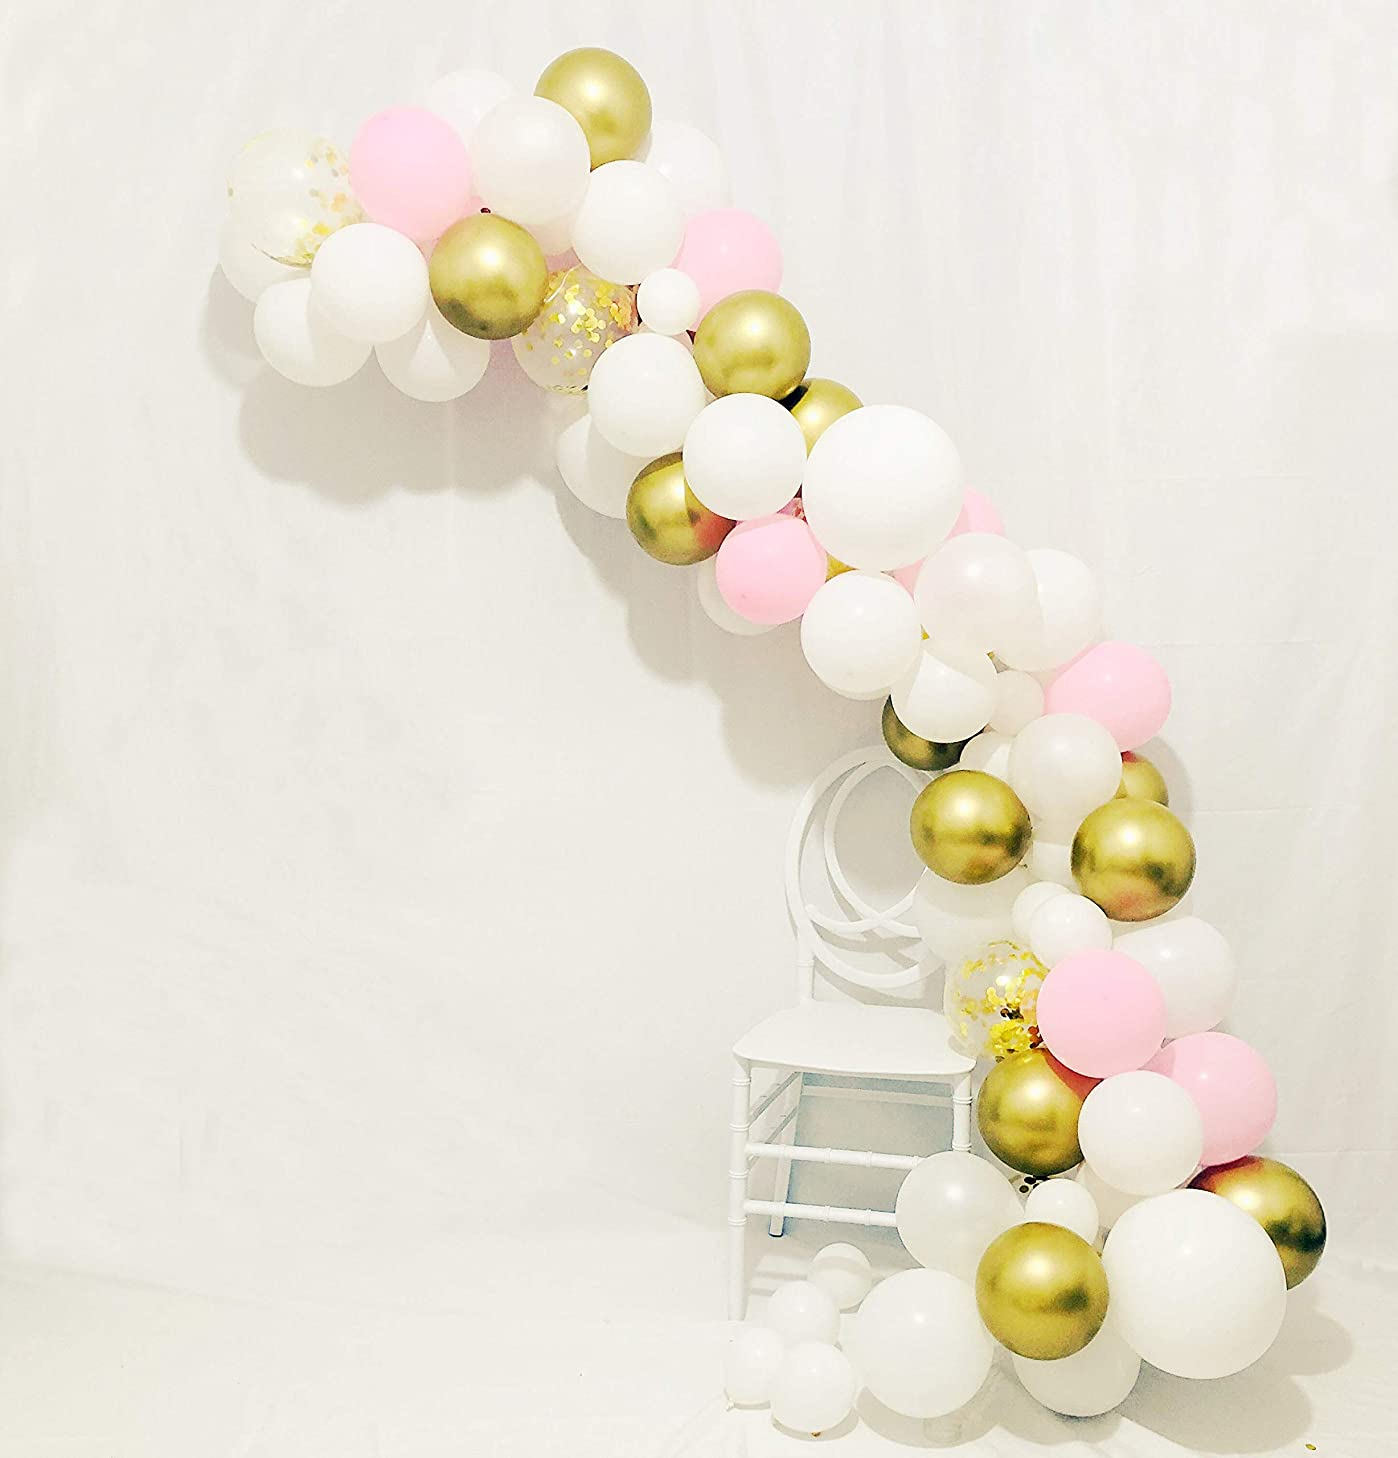 Sogorge Balloon Arch & Garland Kit - 80 Chrome Gold & Blush Pink & White Latex Balloons Gold Confetti Balloons and Balloon Arch & Garland Strip Tool for Wedding, Baby Shower, Graduation Party Decorations